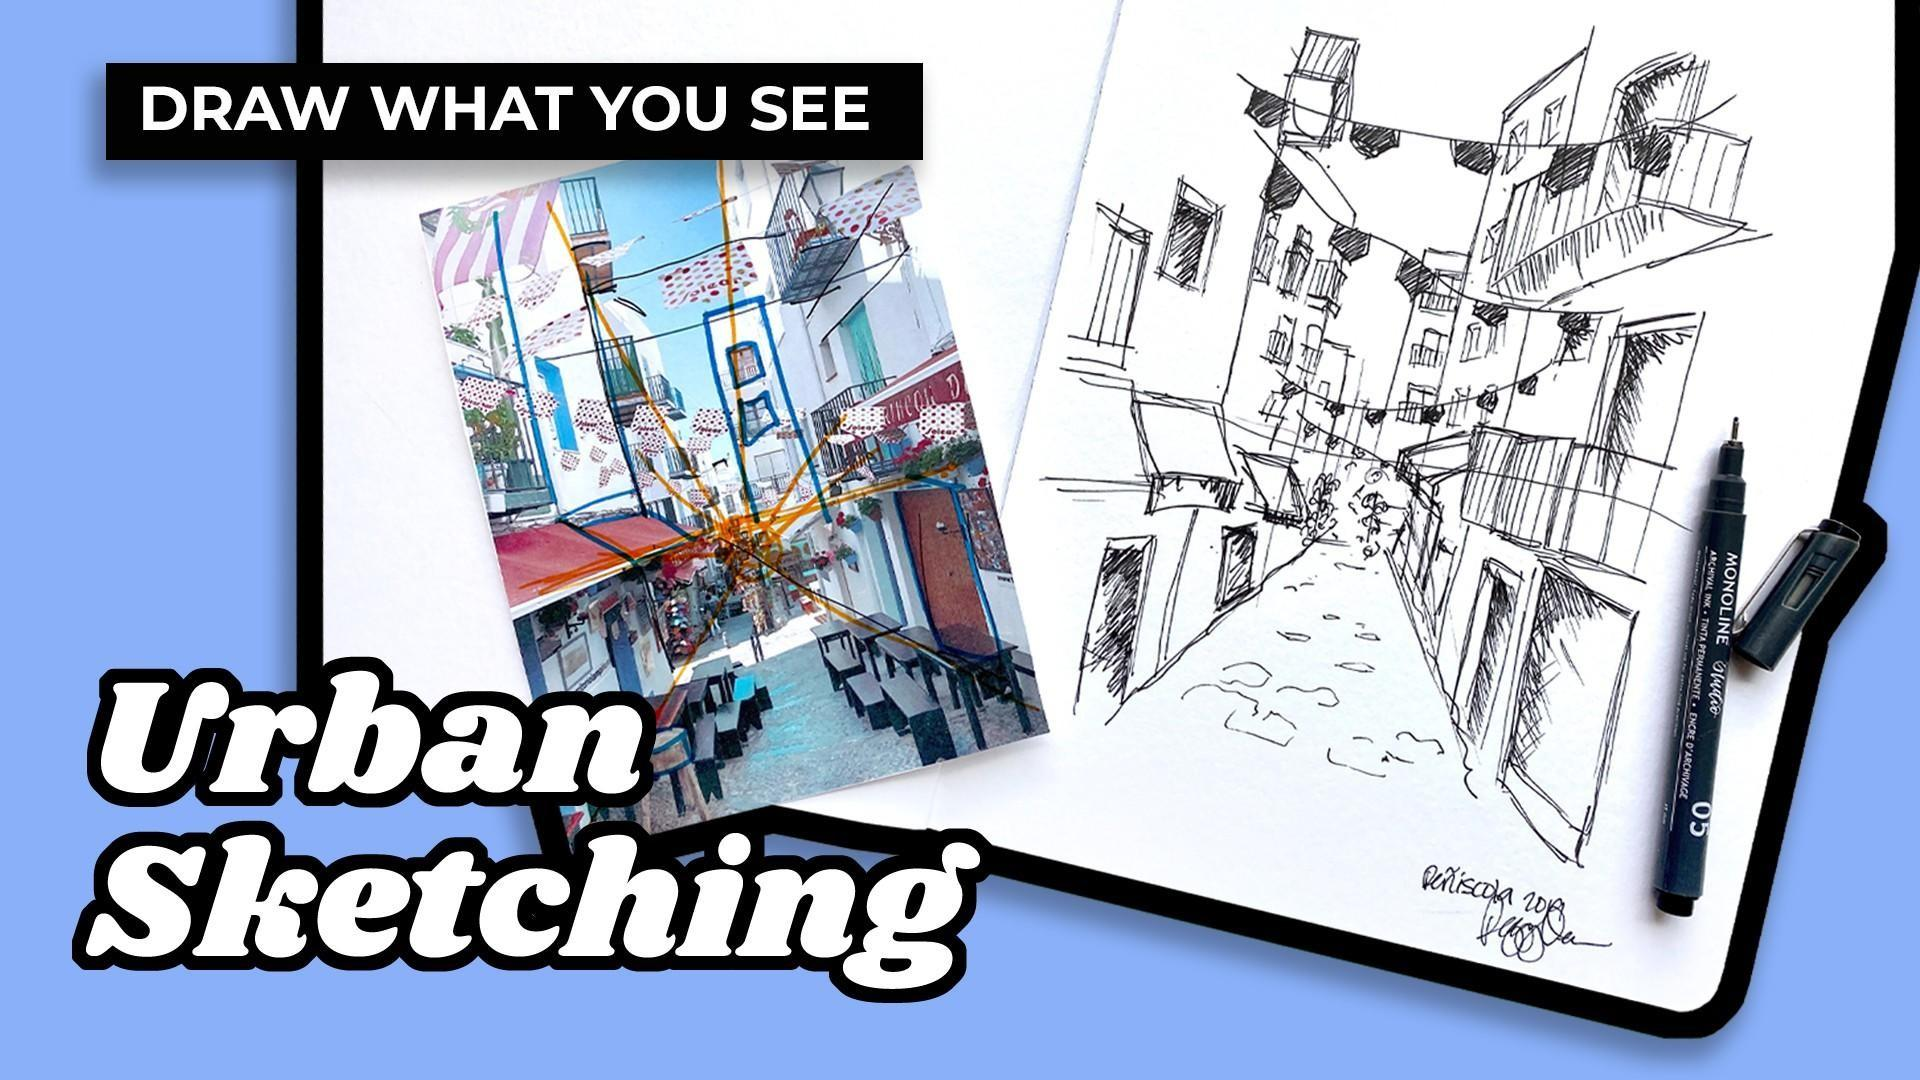 learn urban sketching